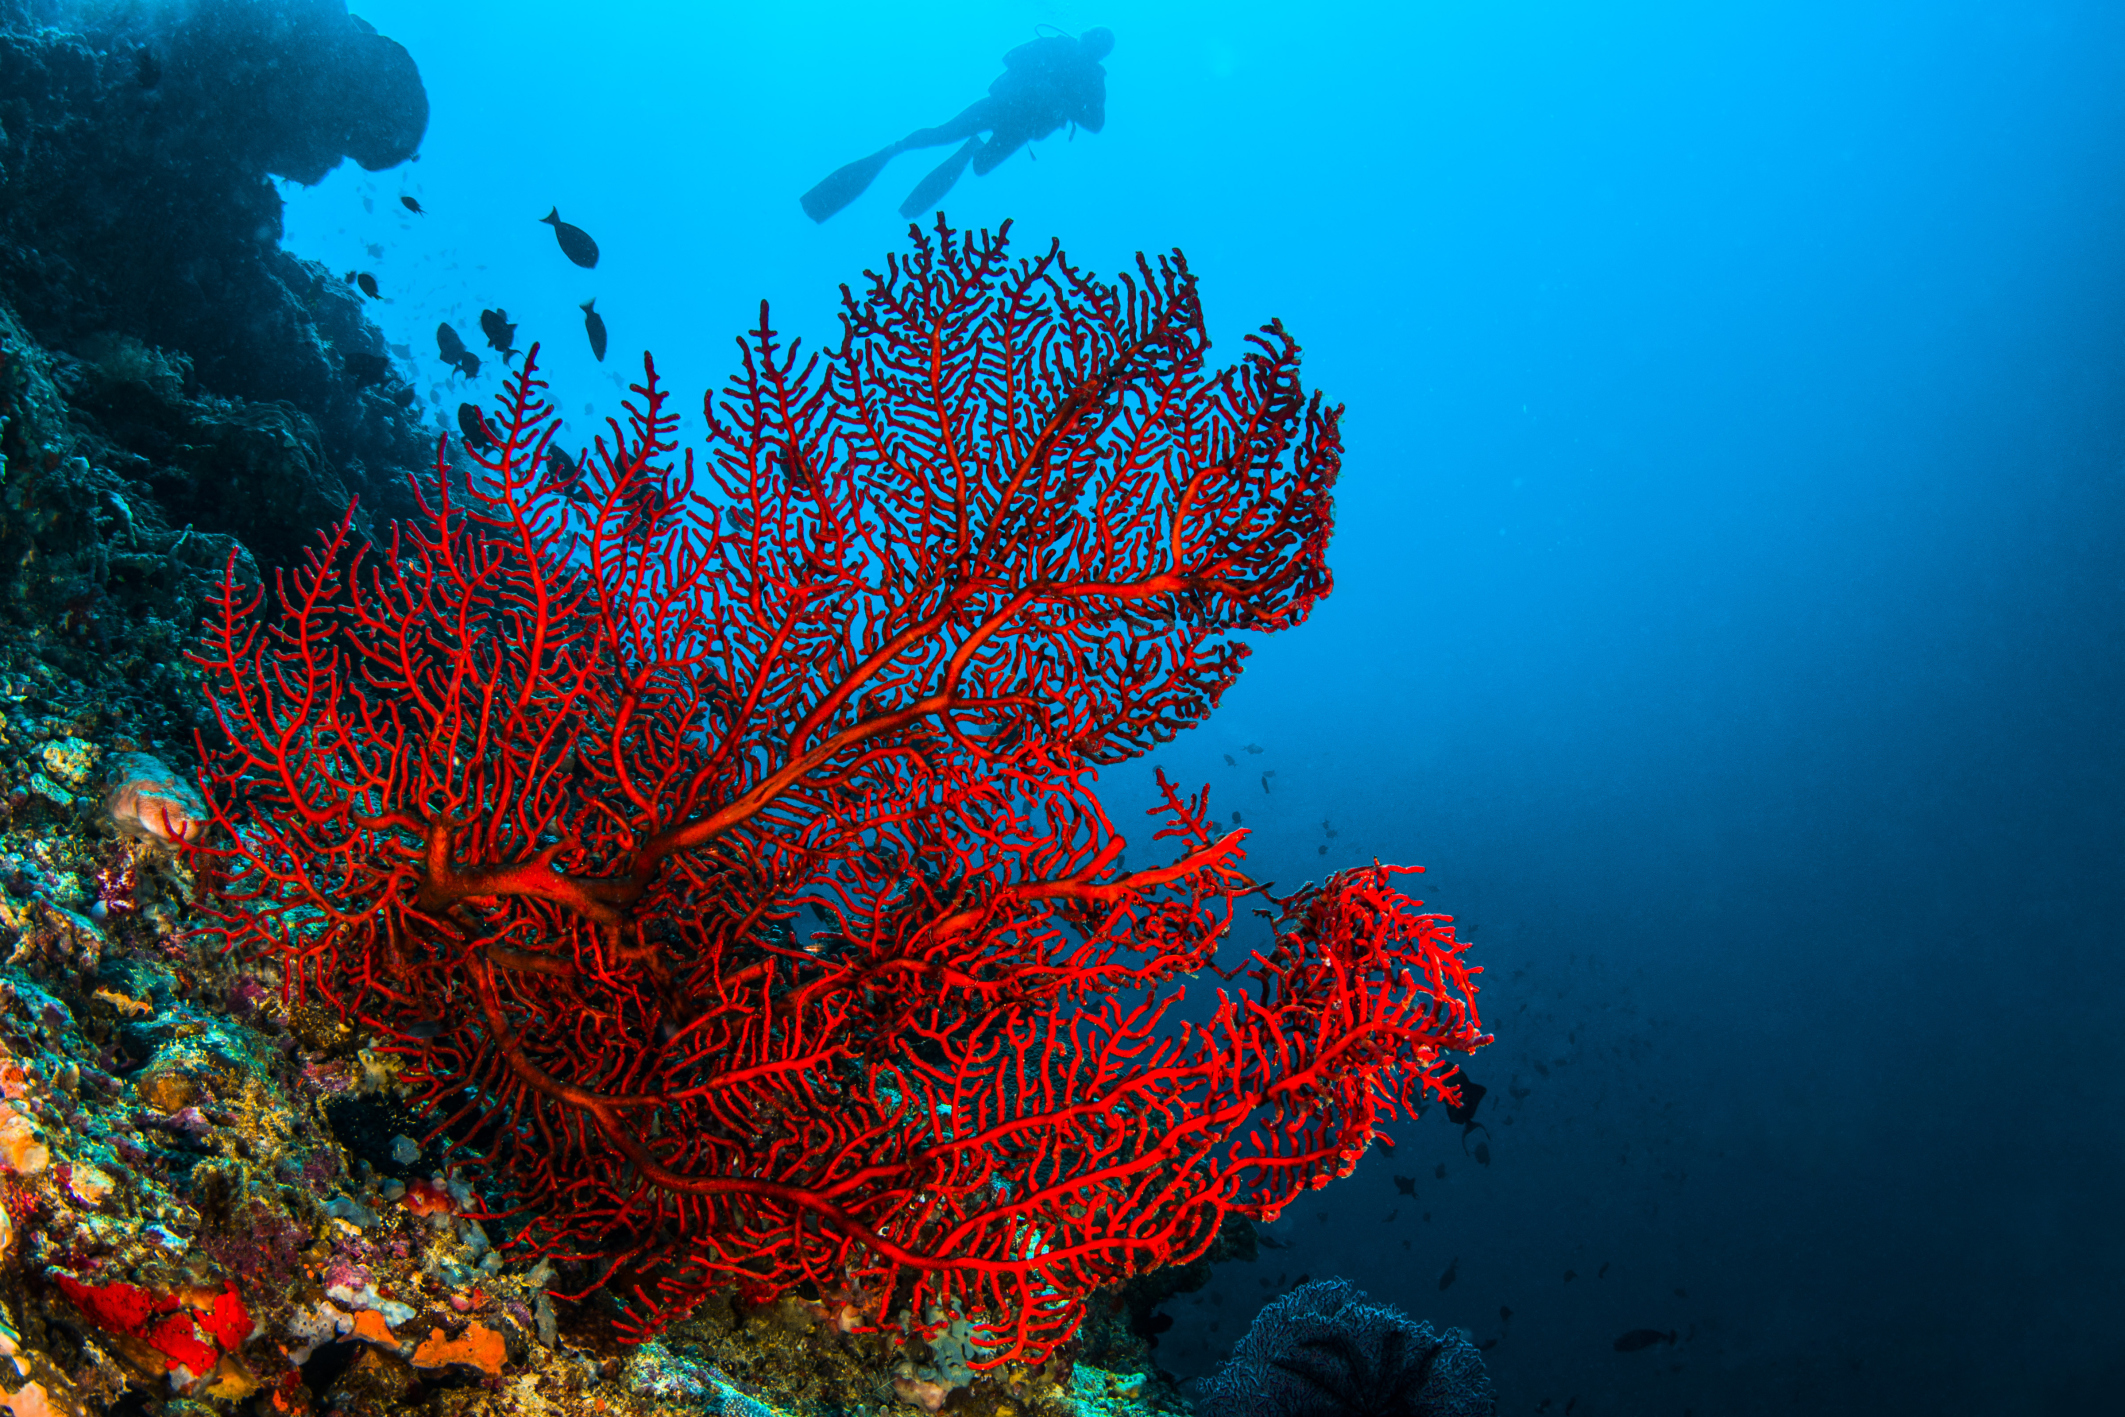 What Are the Healing Qualities of Red Coral? | Healthfully